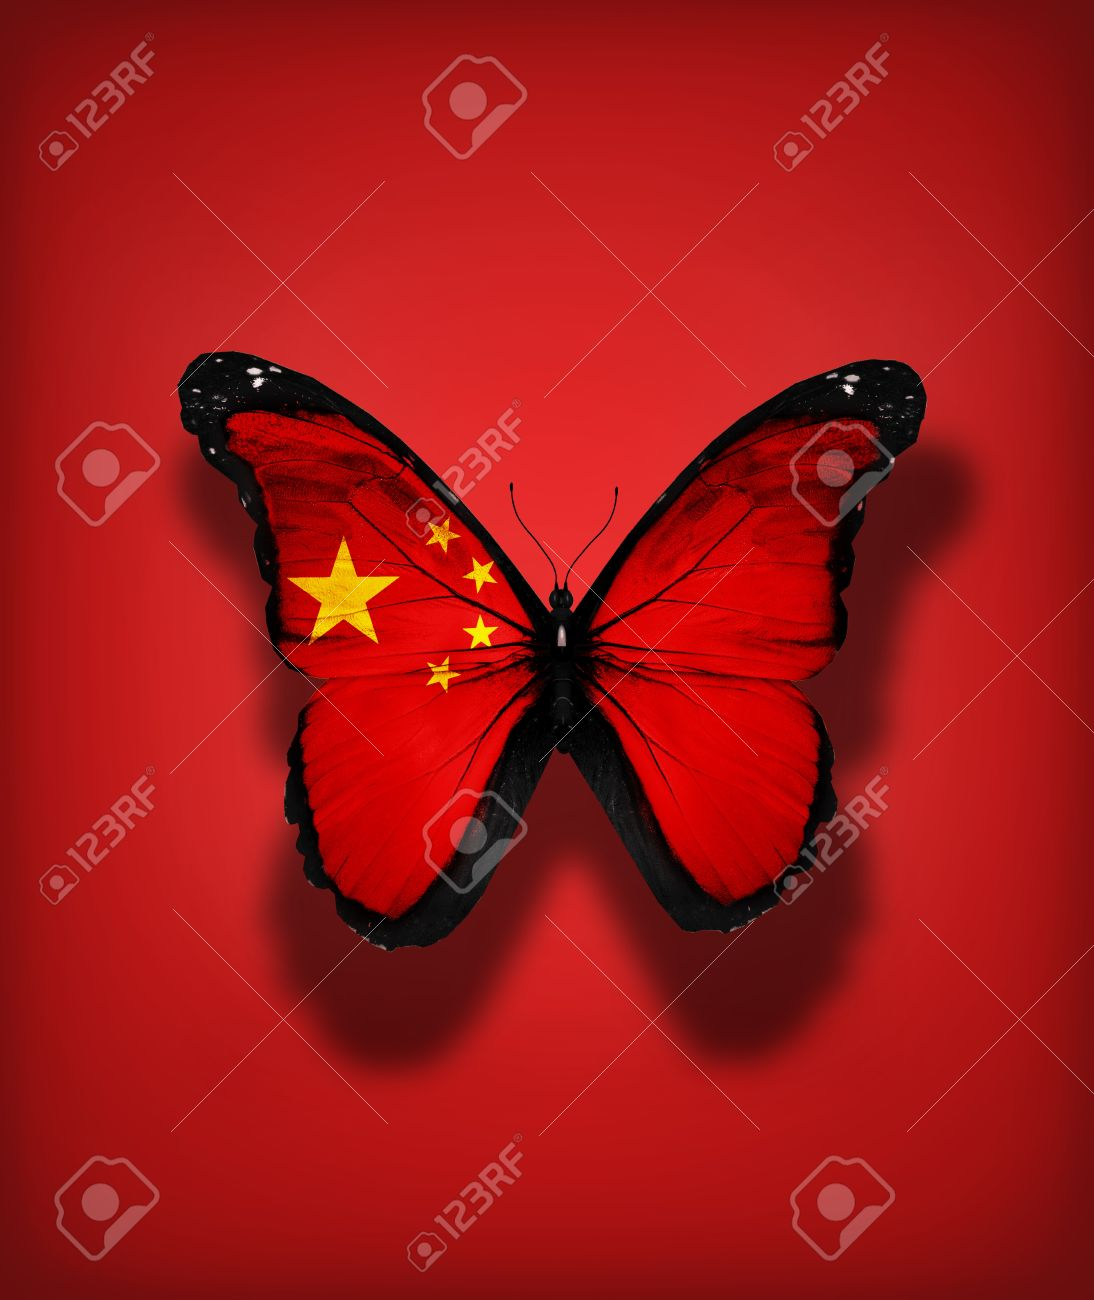 chinese flag butterfly isolated on flag background stock photo